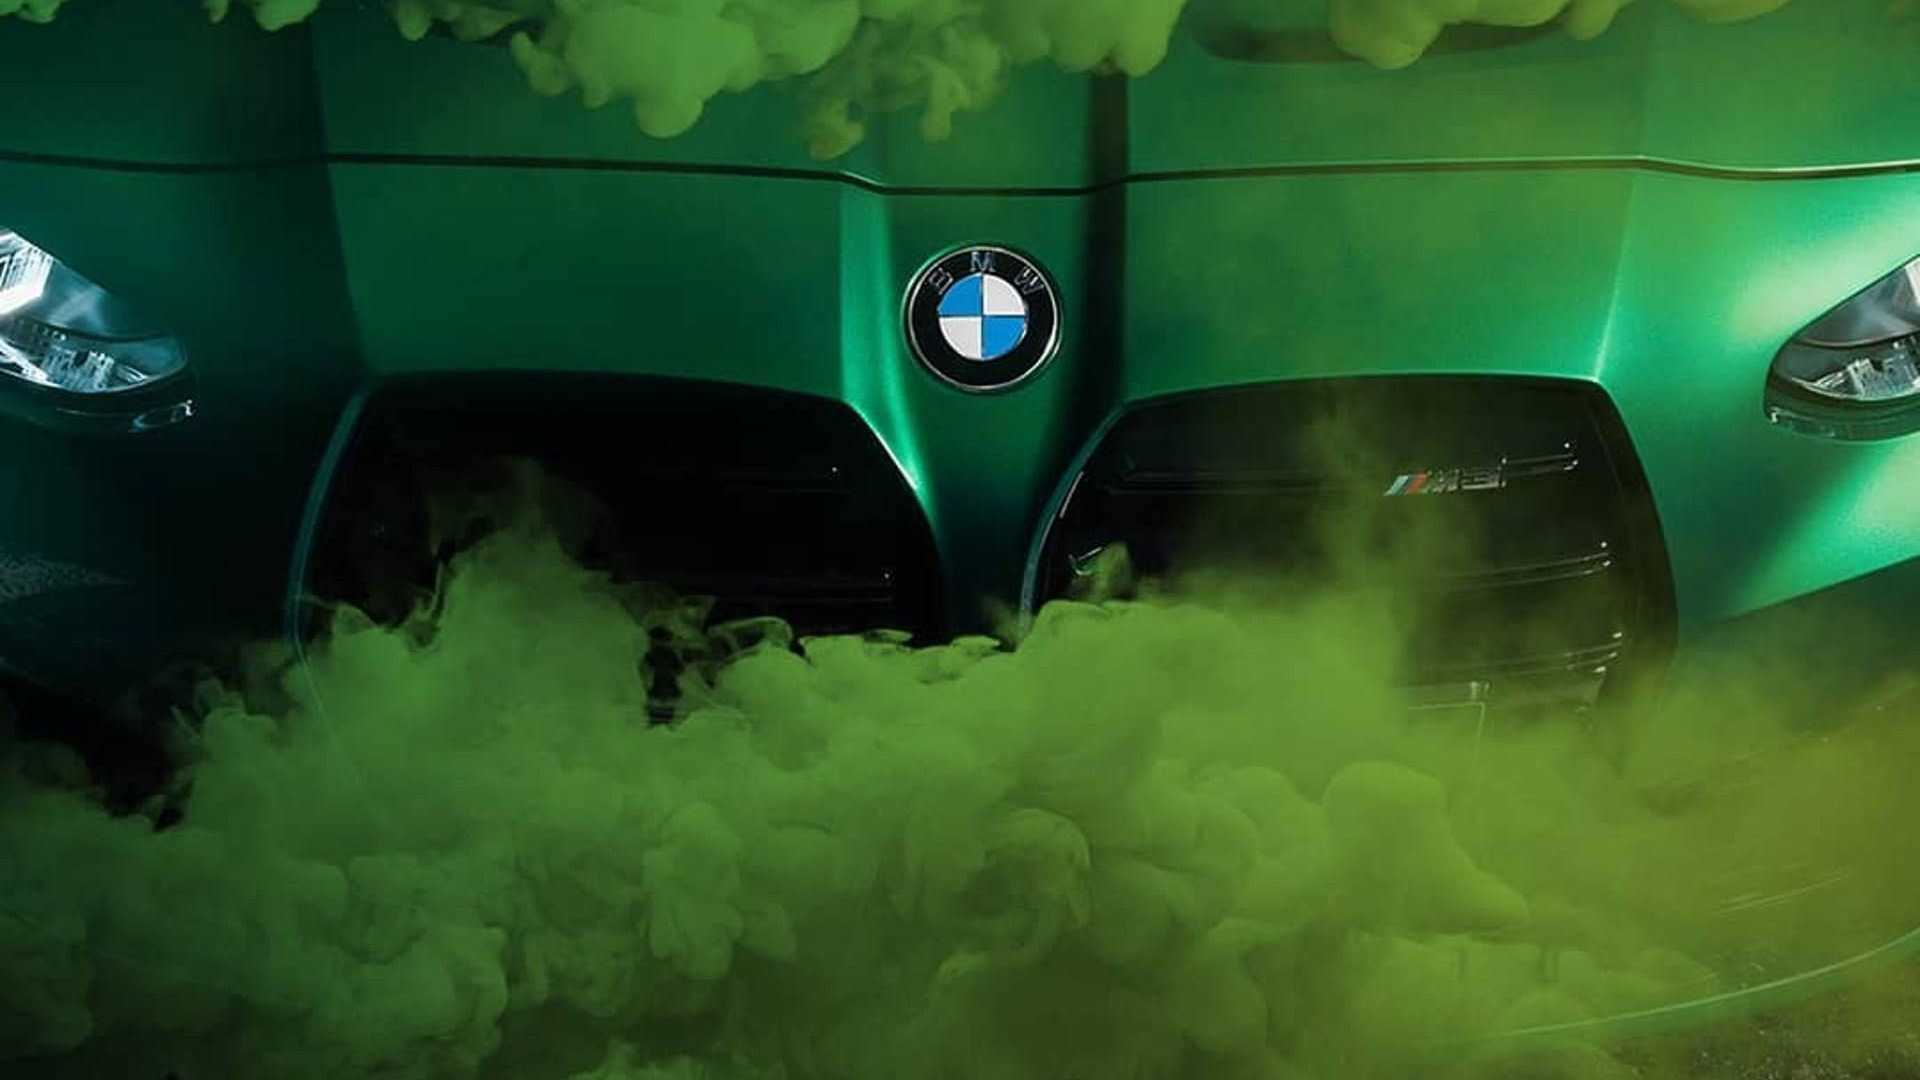 More Smoky Teasers Of The BMW M3 And M4 Have Surfaced - Motor1